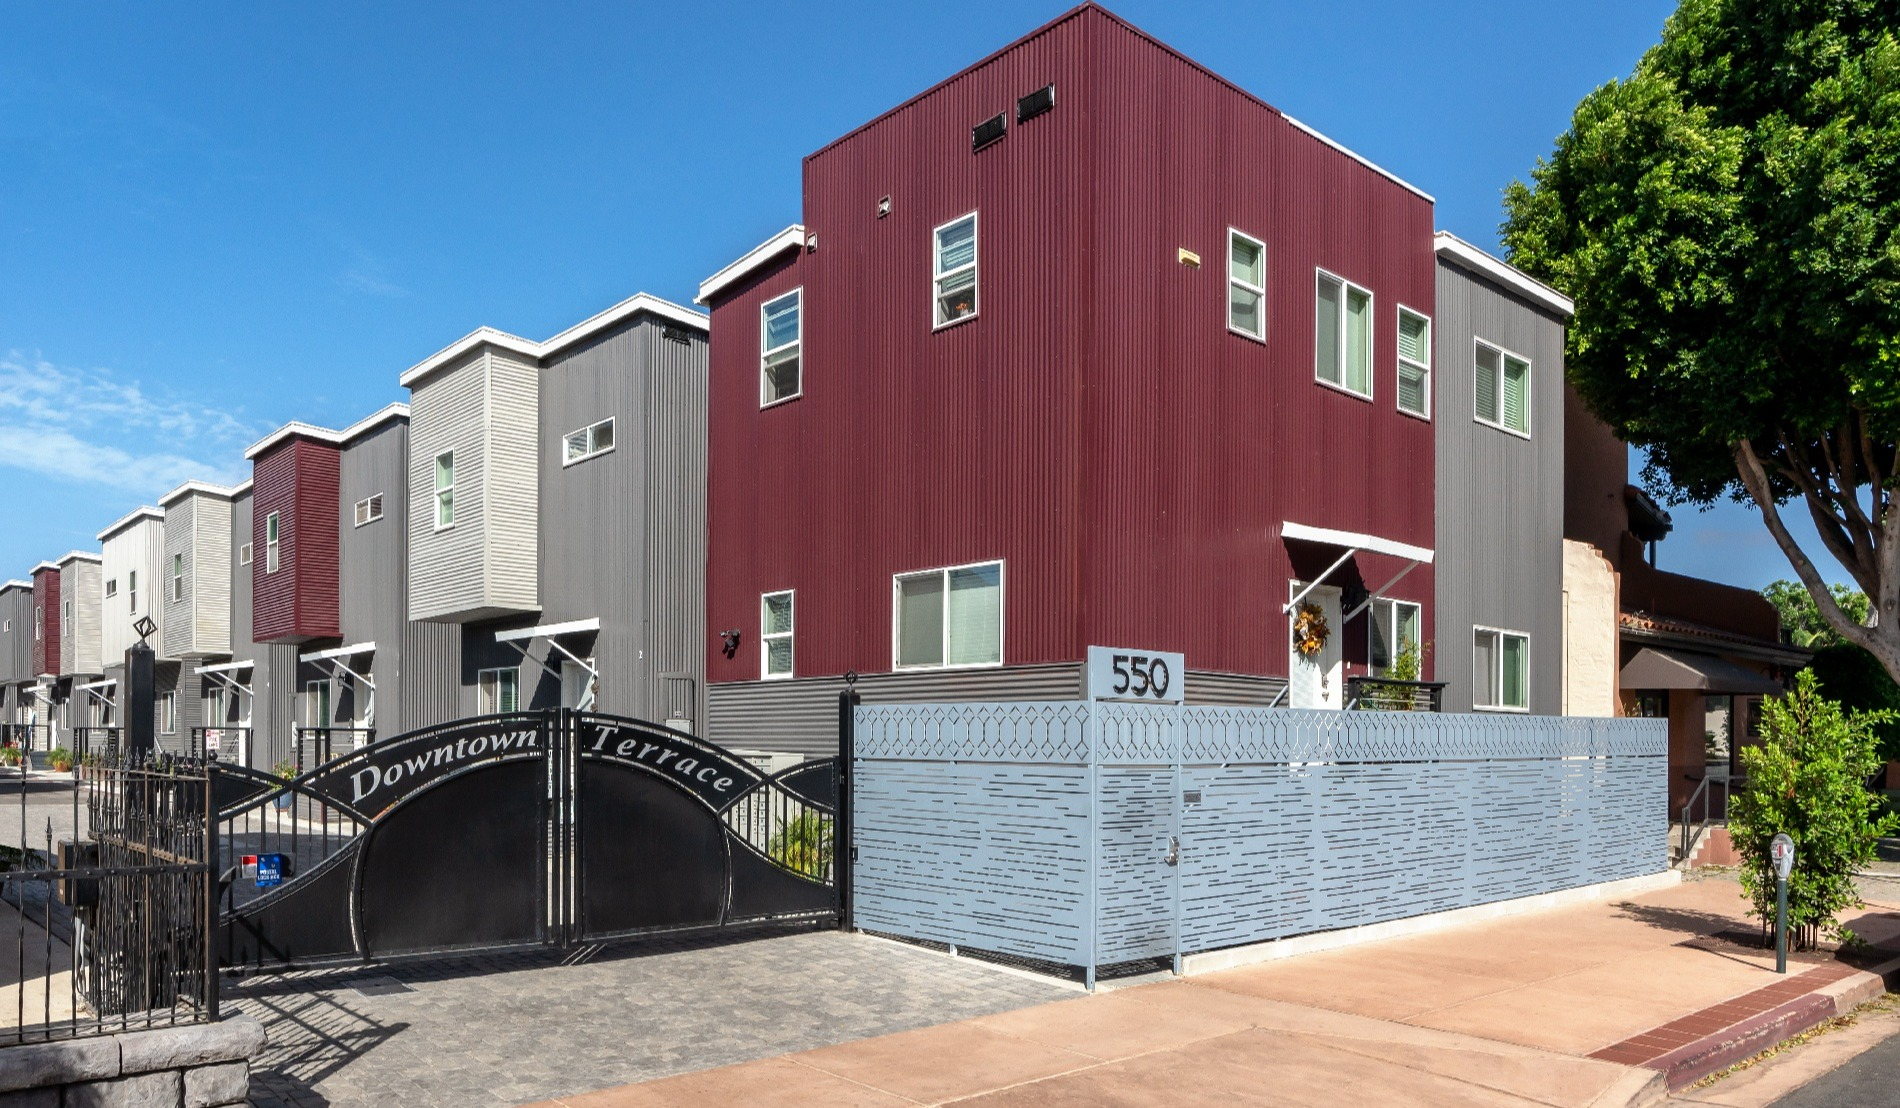 Corrugated Panels Provide Contemporary Aesthetic for California Apartments